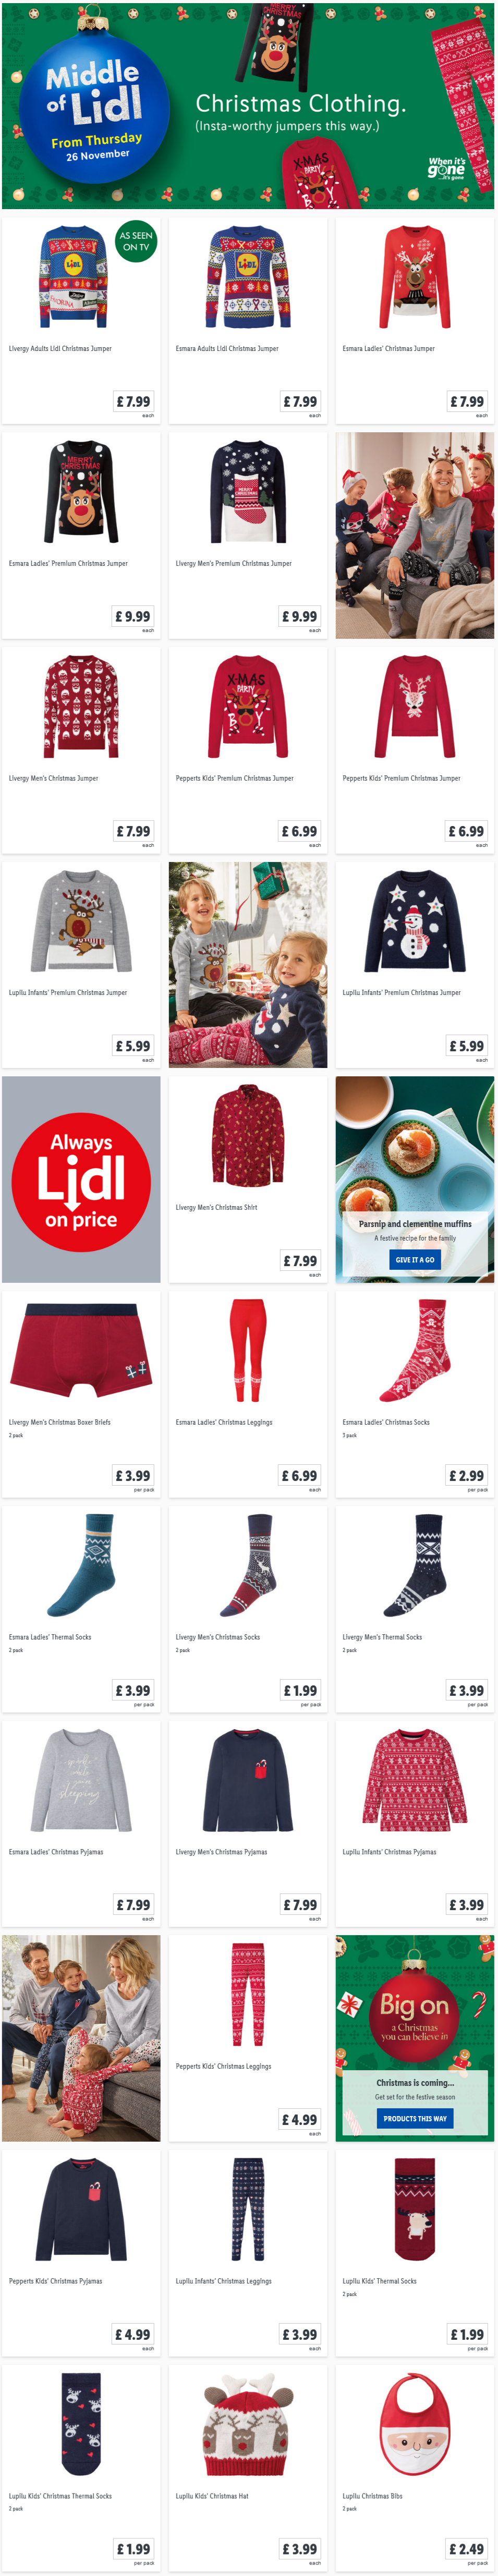 LIDL Offers this Thursday Christmas Clothing From 26th November 2020